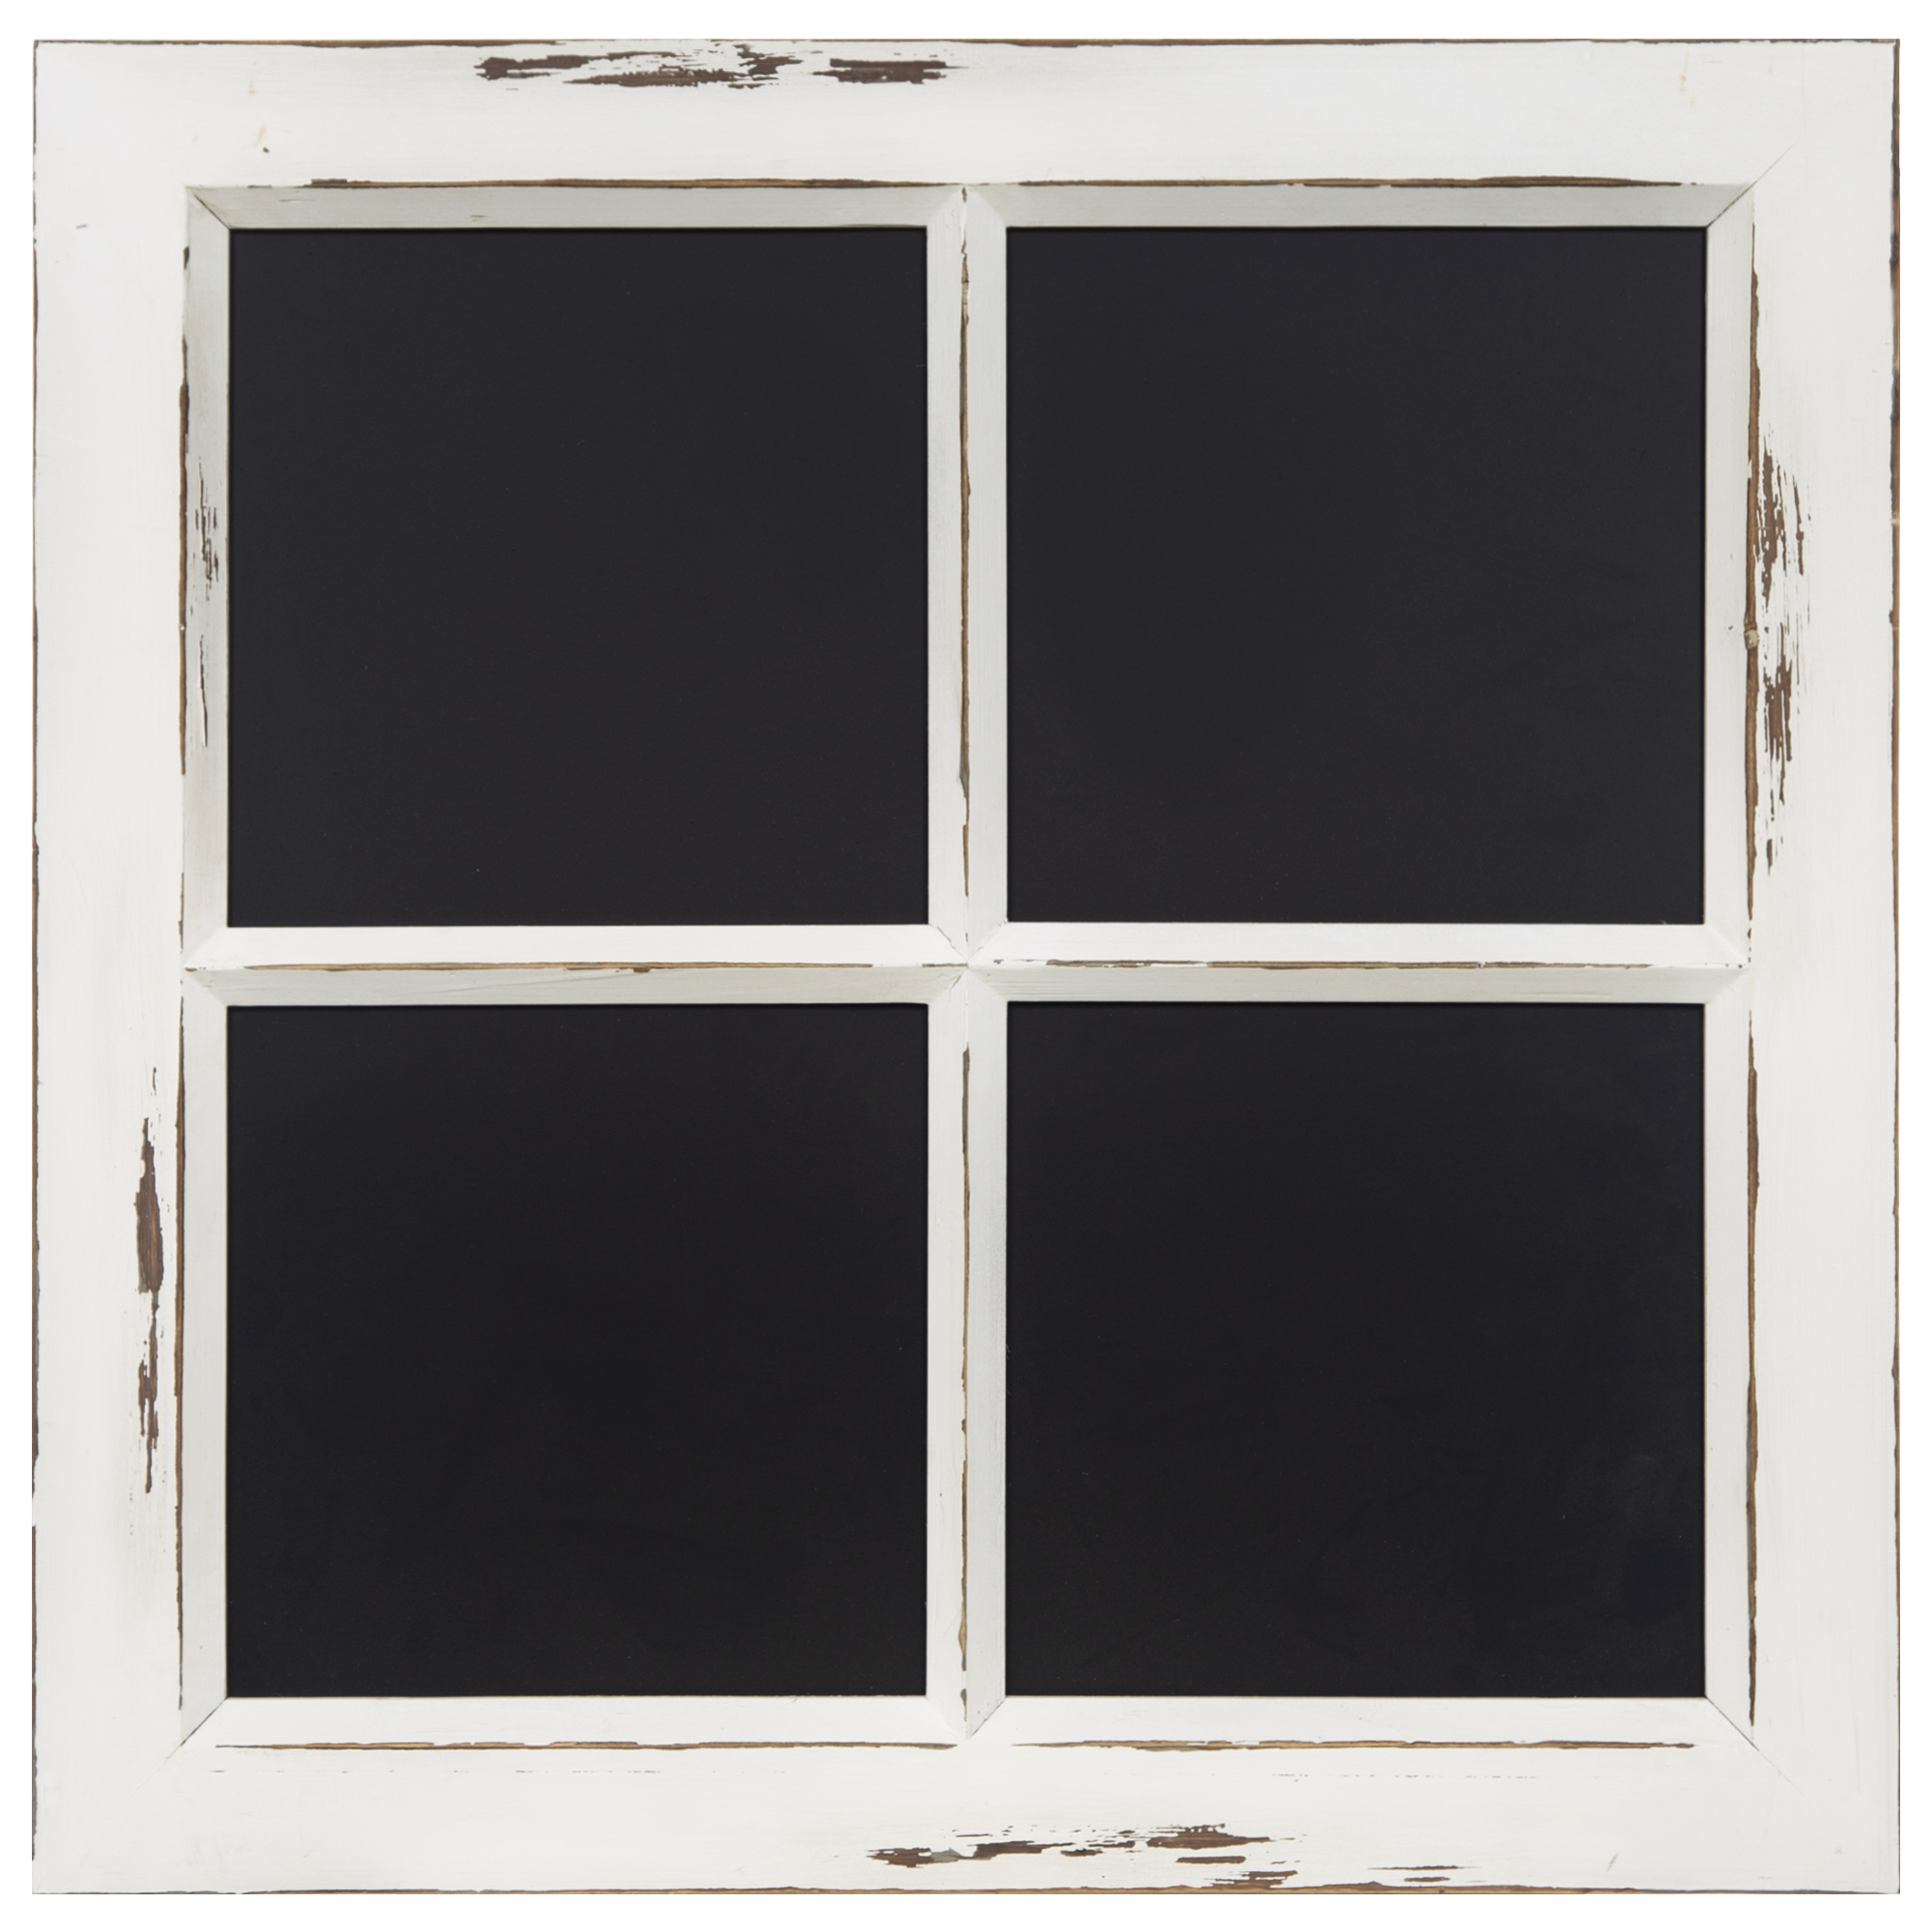 Distressed White Rustic Framed Window Pane Wall Chalkboard by Gallery Solutions